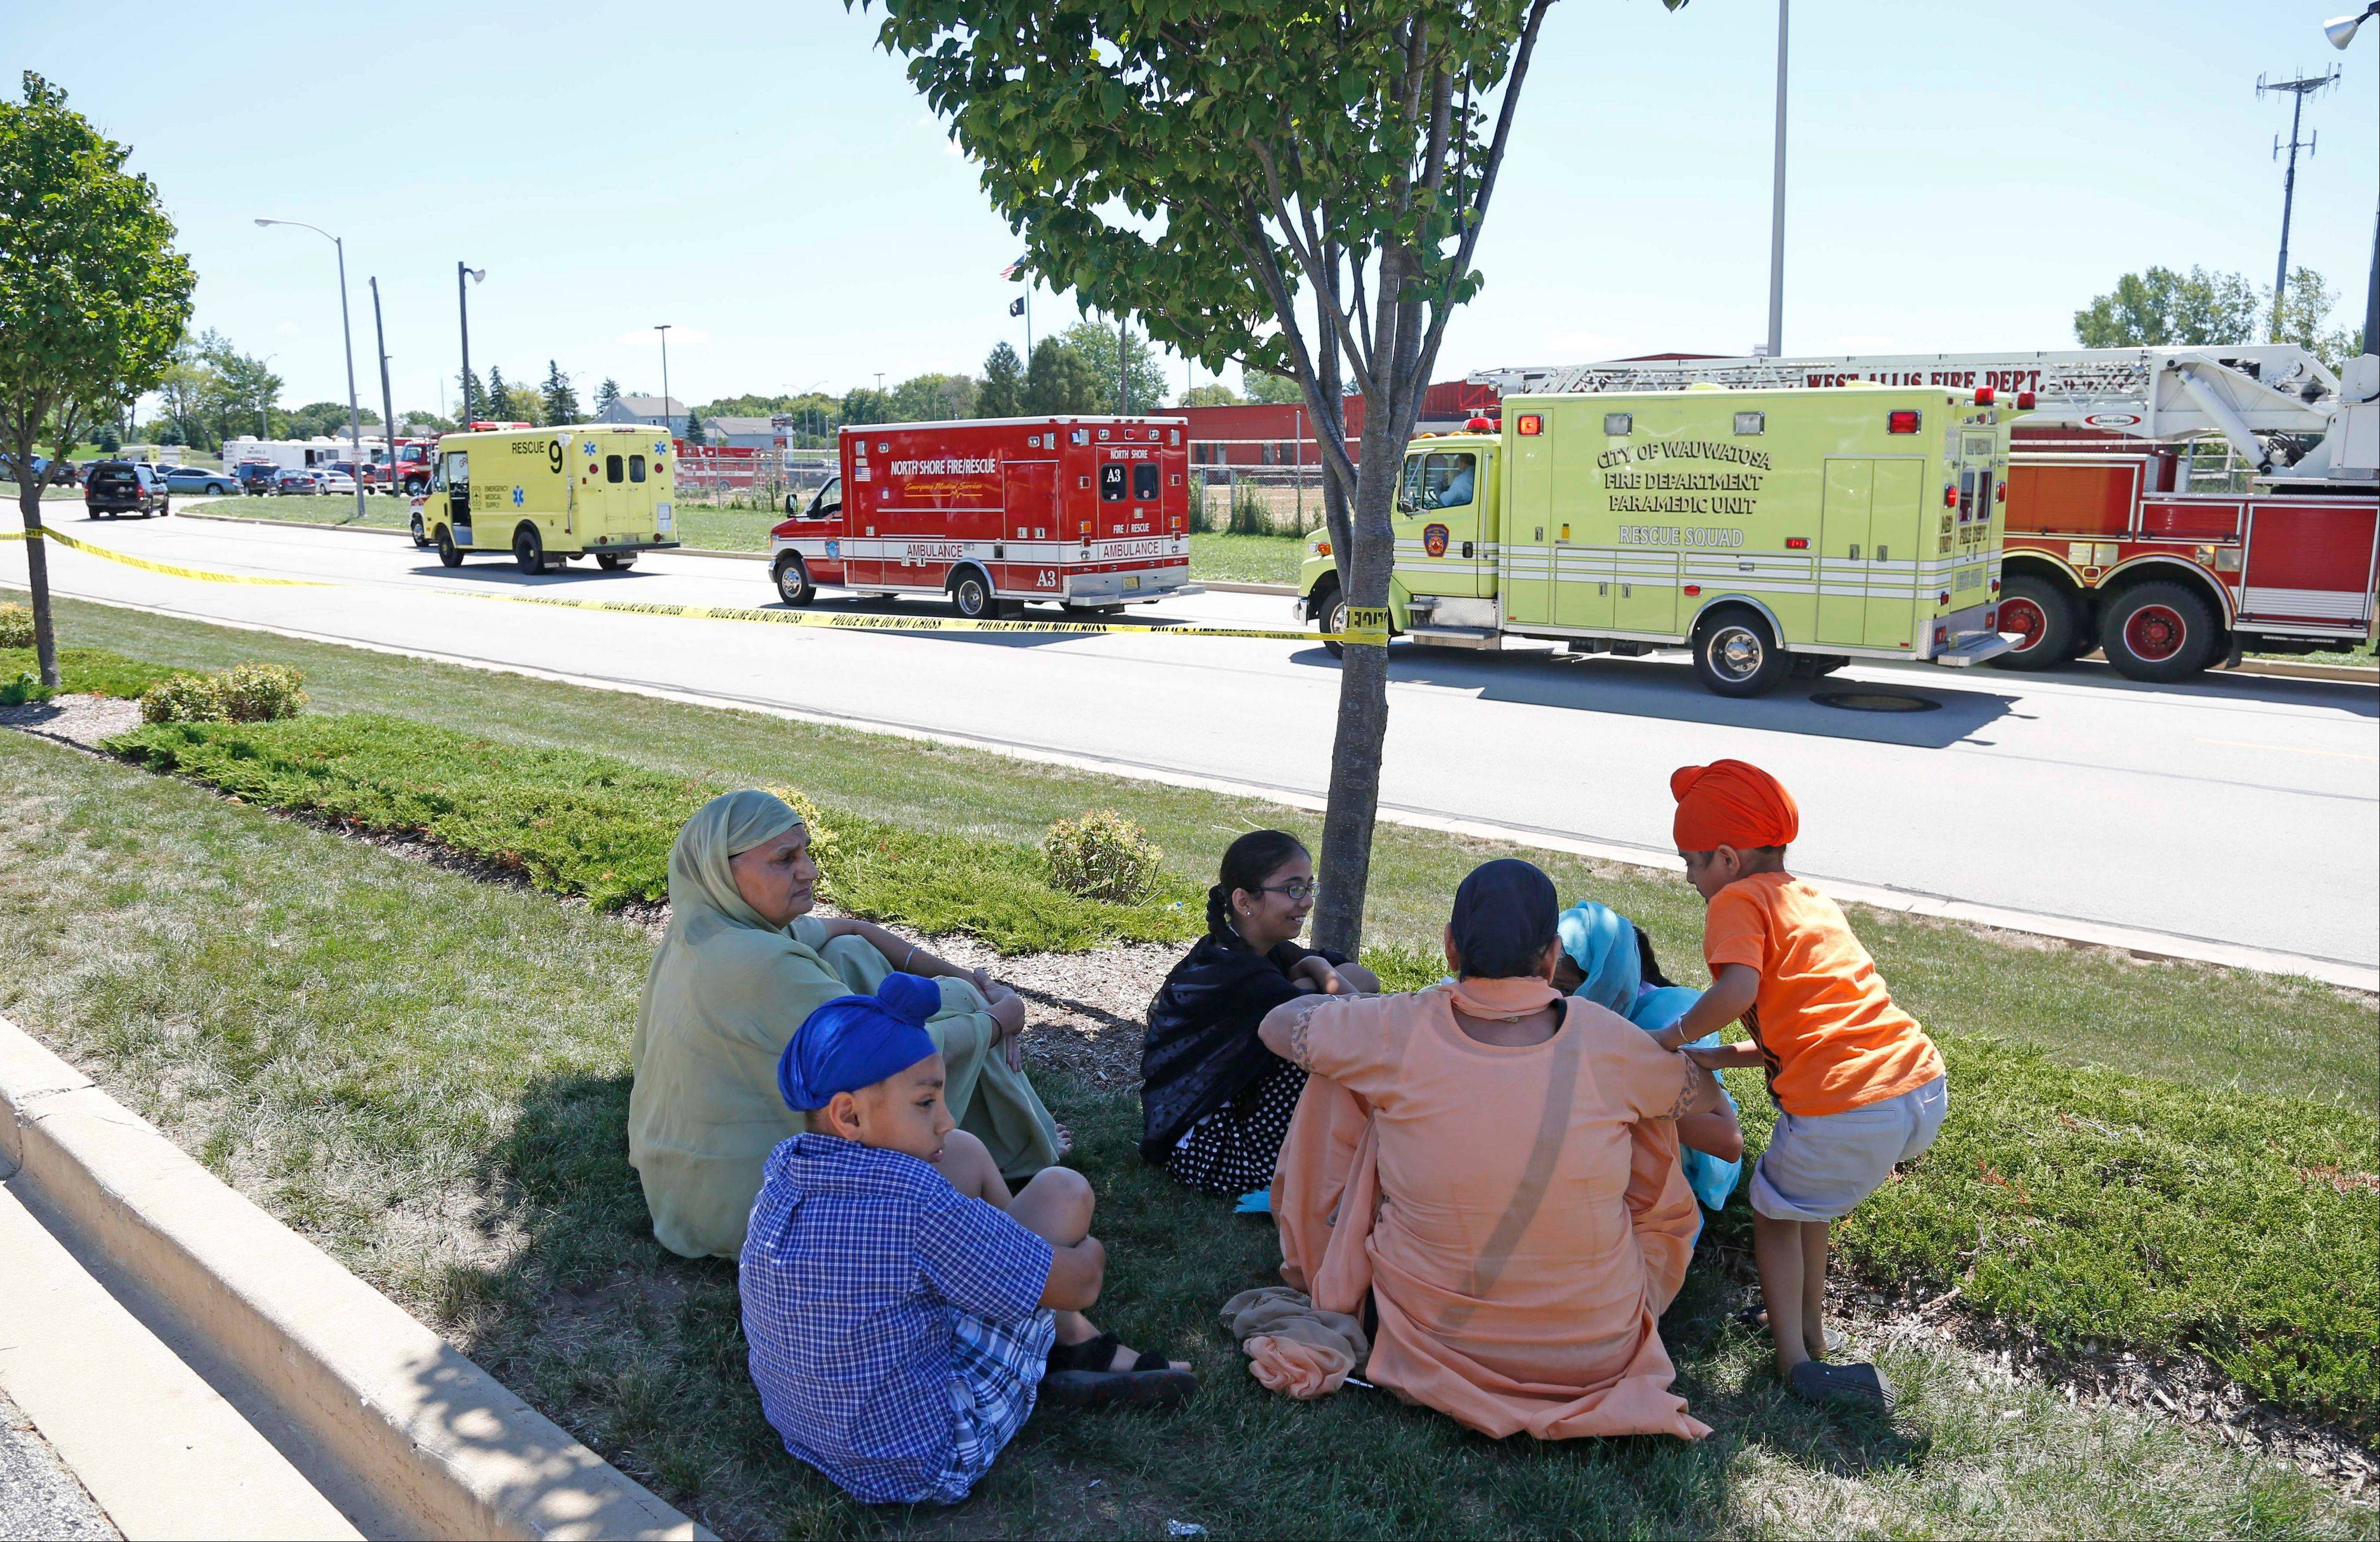 Bystanders sit in the shade at the scene of a shooting inside a Sikh temple in Oak Creek, Wis. Greenfield Police Chief Bradley Wentlandt said tactical officers have been through the temple where shots were fired about 10:30 a.m. Sunday.